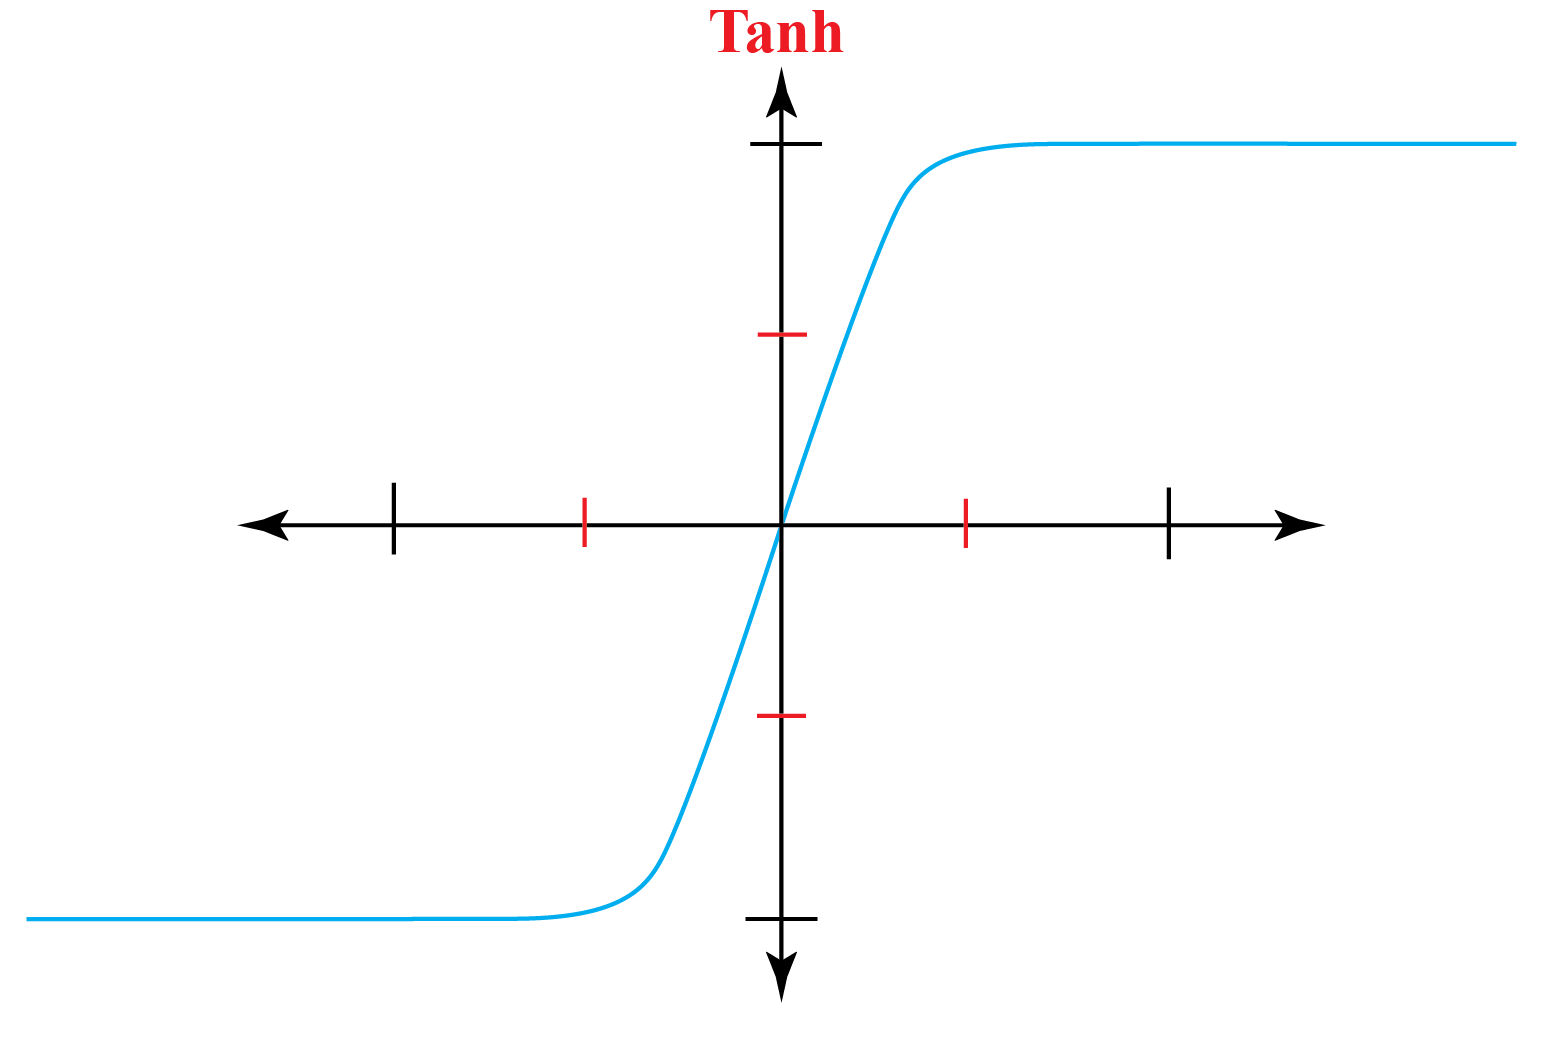 Graph of tanh